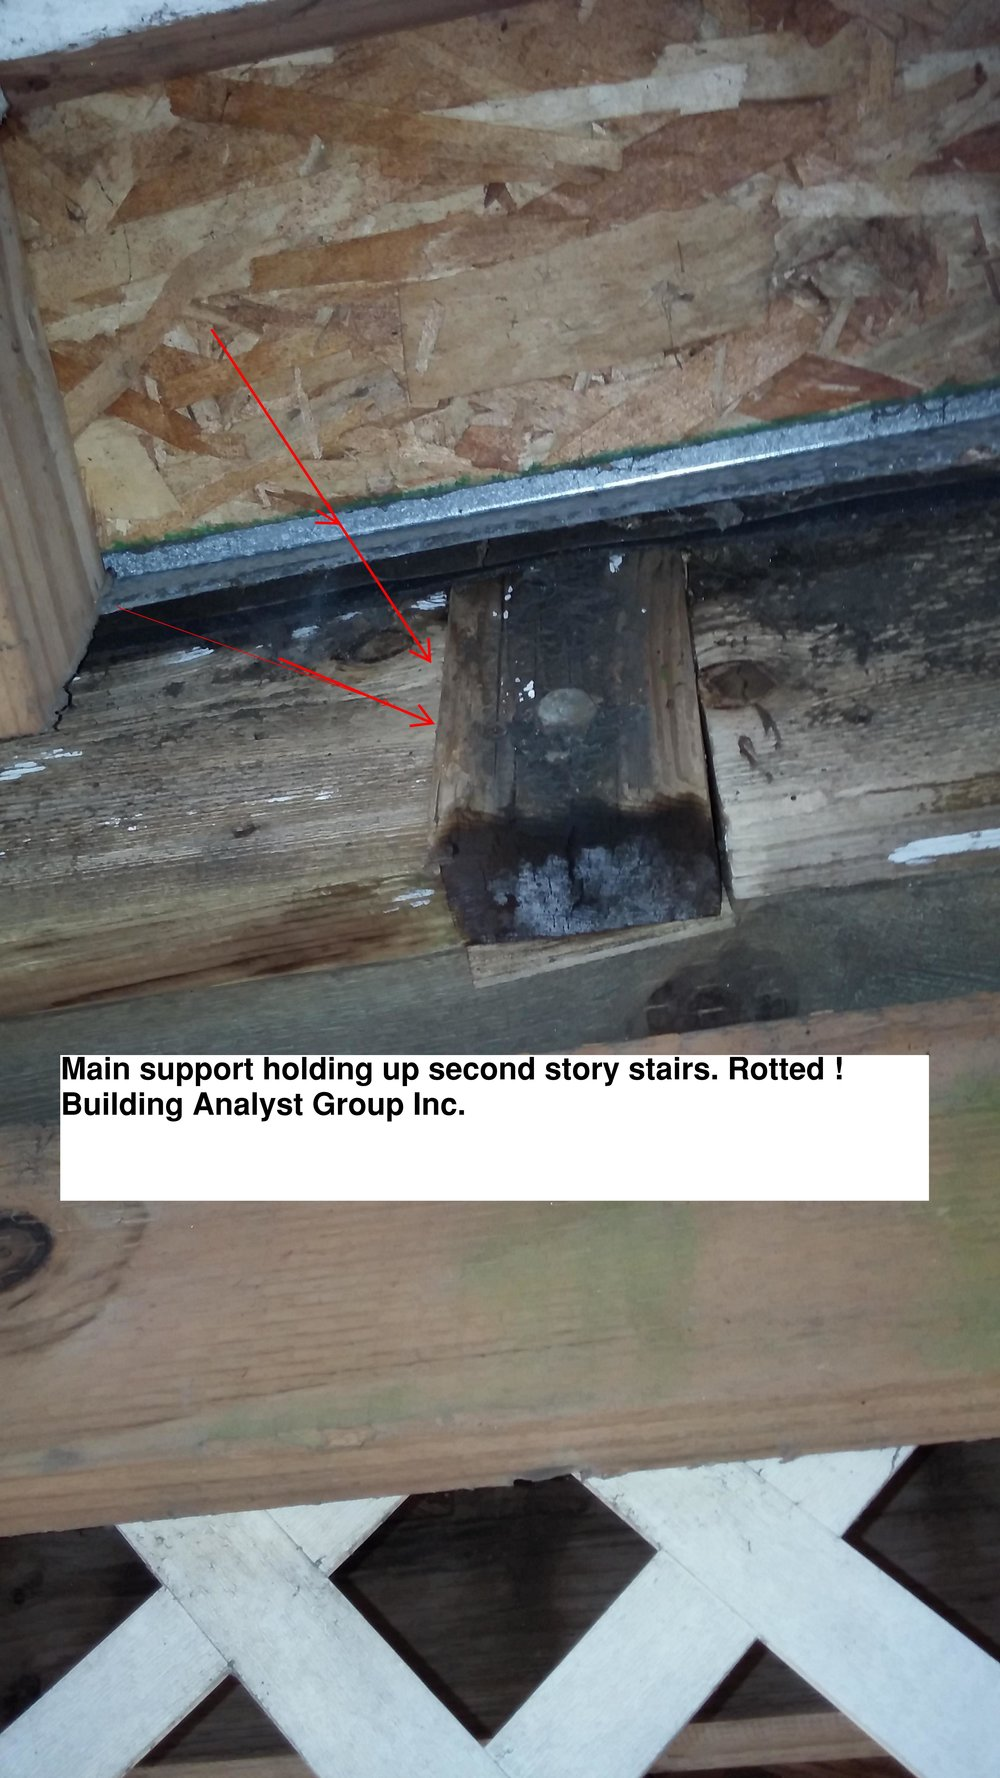 Main Support, Underside Of Decking, Approx 15 Feet, 2nd Story Stairs -